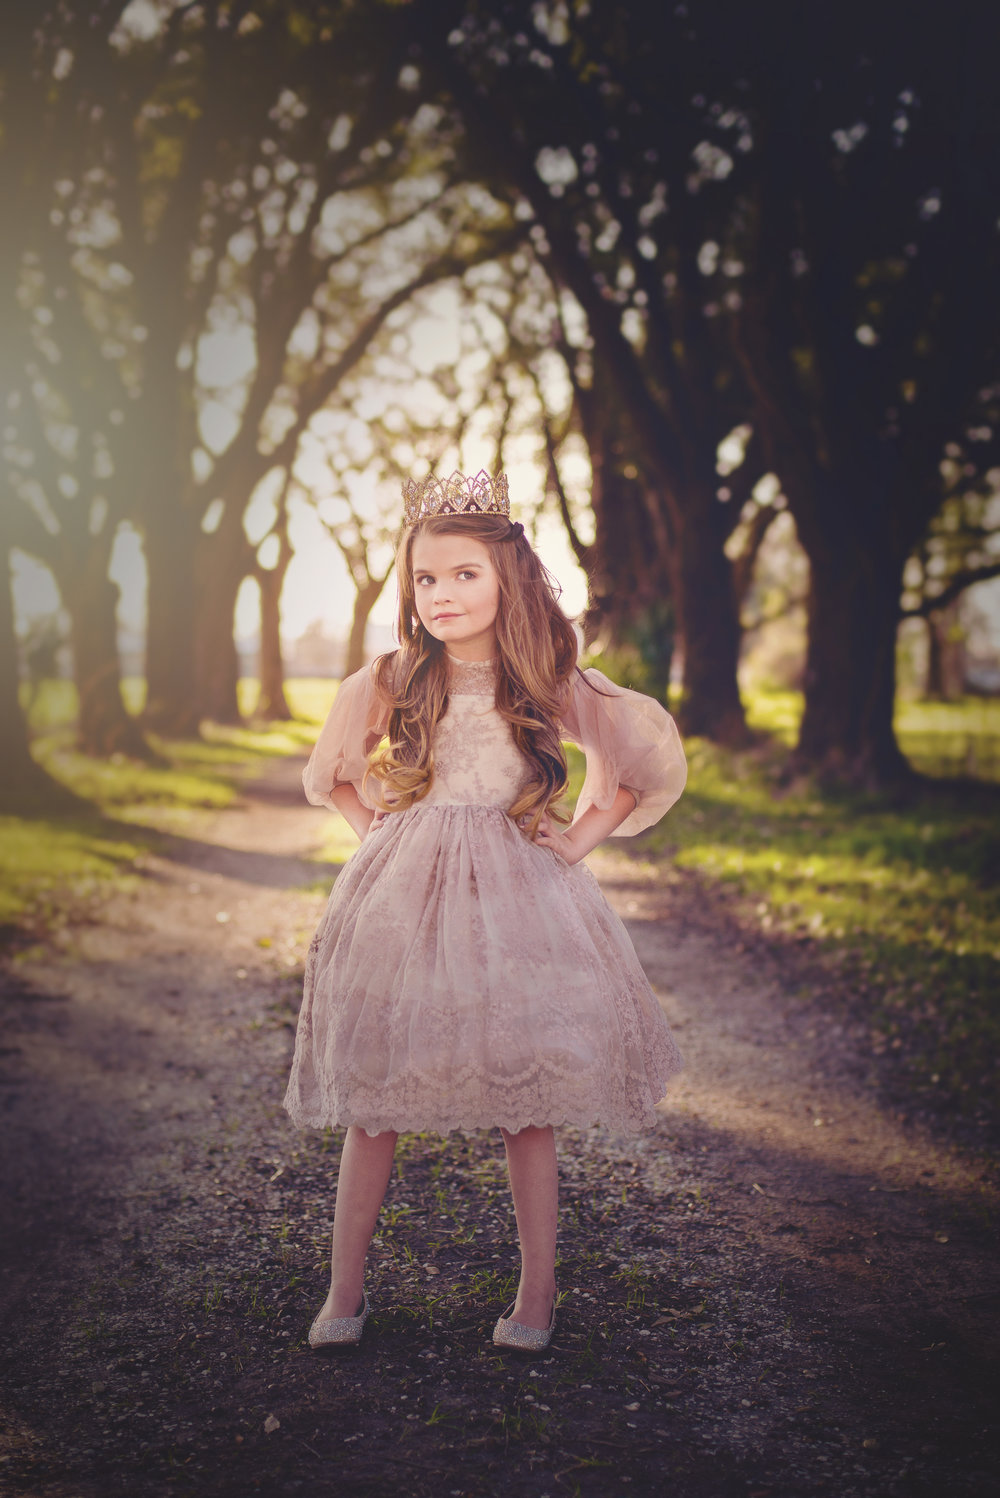 Storybook collection children photography family photography birth photography covington la mandevile la new orleans fine art